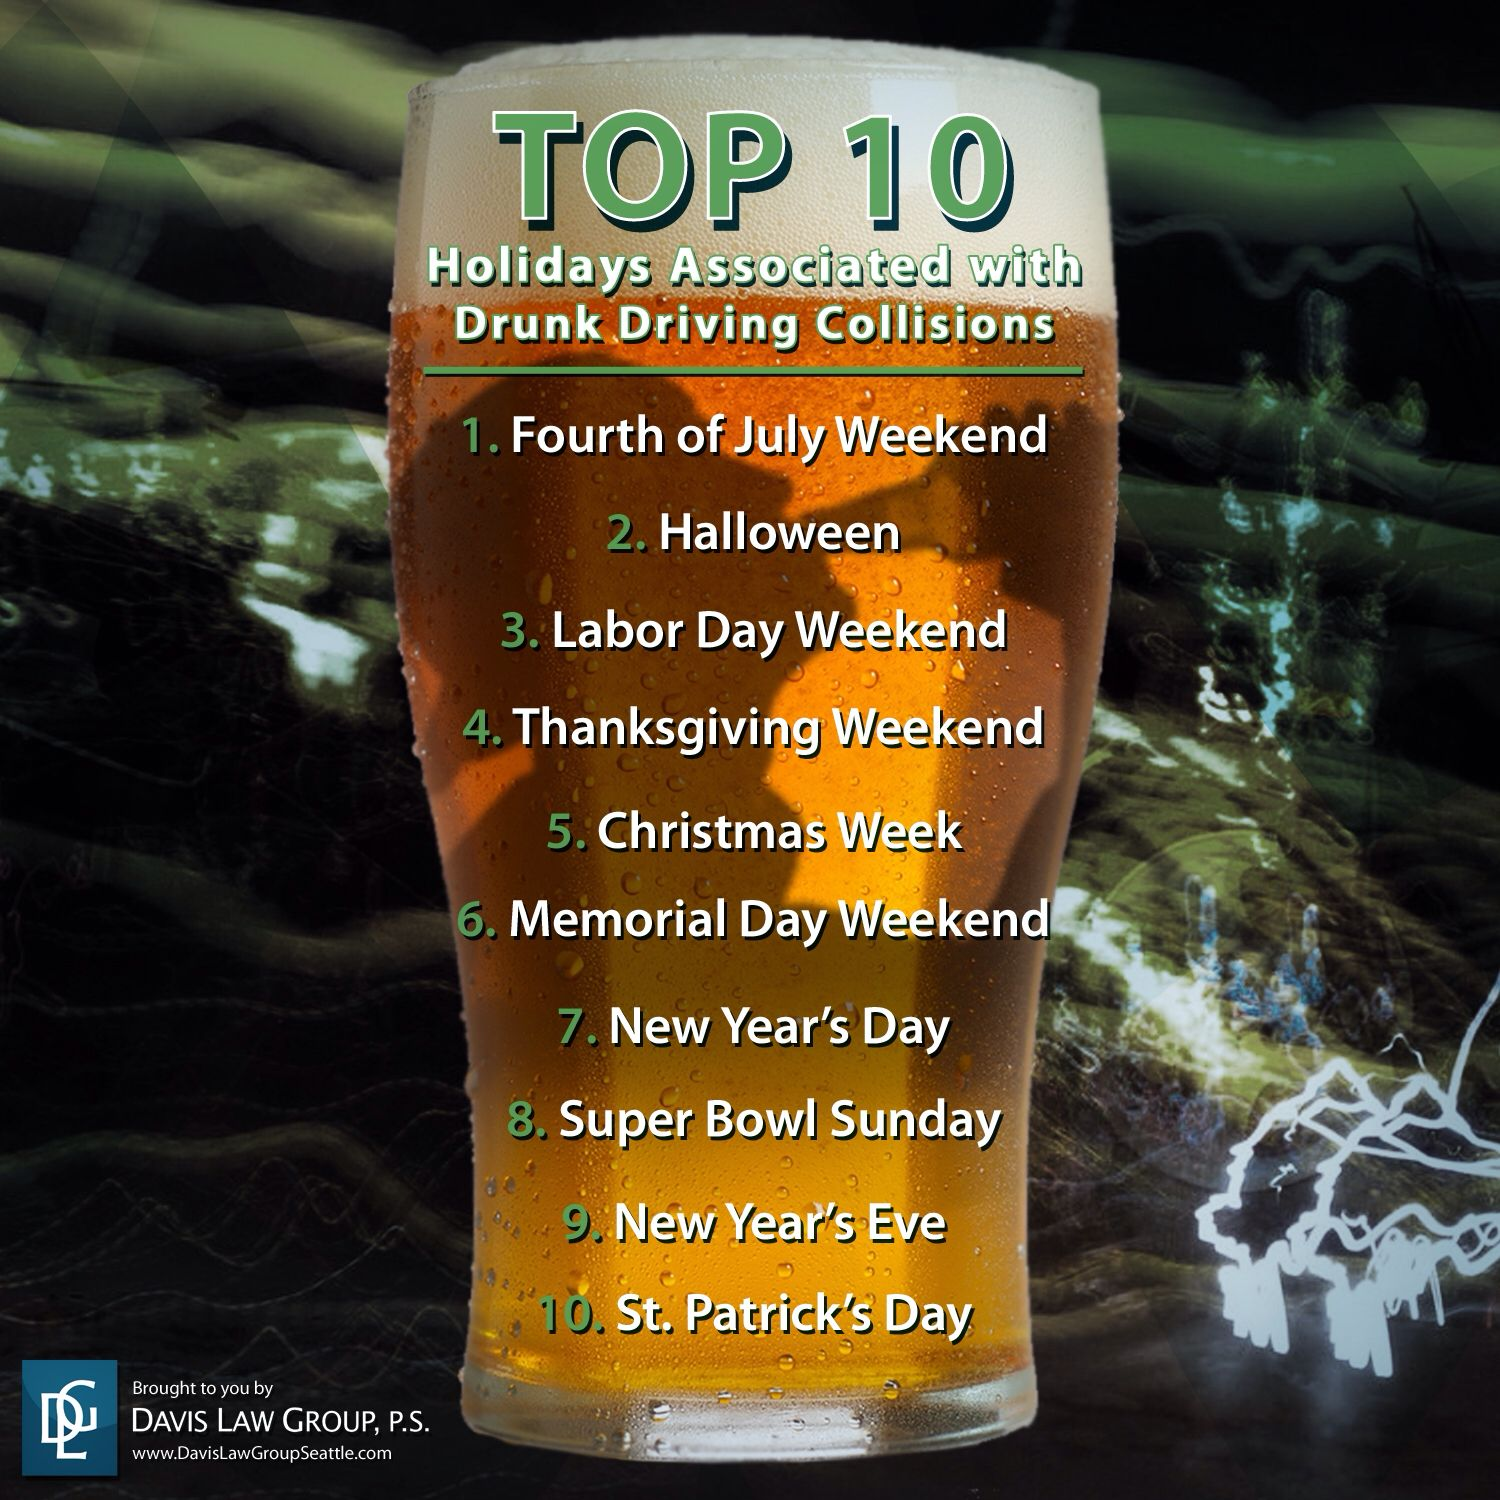 This image above shows the top 10 holidays that are most commonly related with drunk driving accidents/collisions. This is significant because drunk driving can cause many damages at any point in time.If you choose to celebrate a holiday by drinking and then driving a vehicle you not only risk killing yourself or someone else, but the trauma and financial costs of a crash or an arrest for driving drunk can be devastating. Celebrate smart. Stay alive, don't drink and drive.